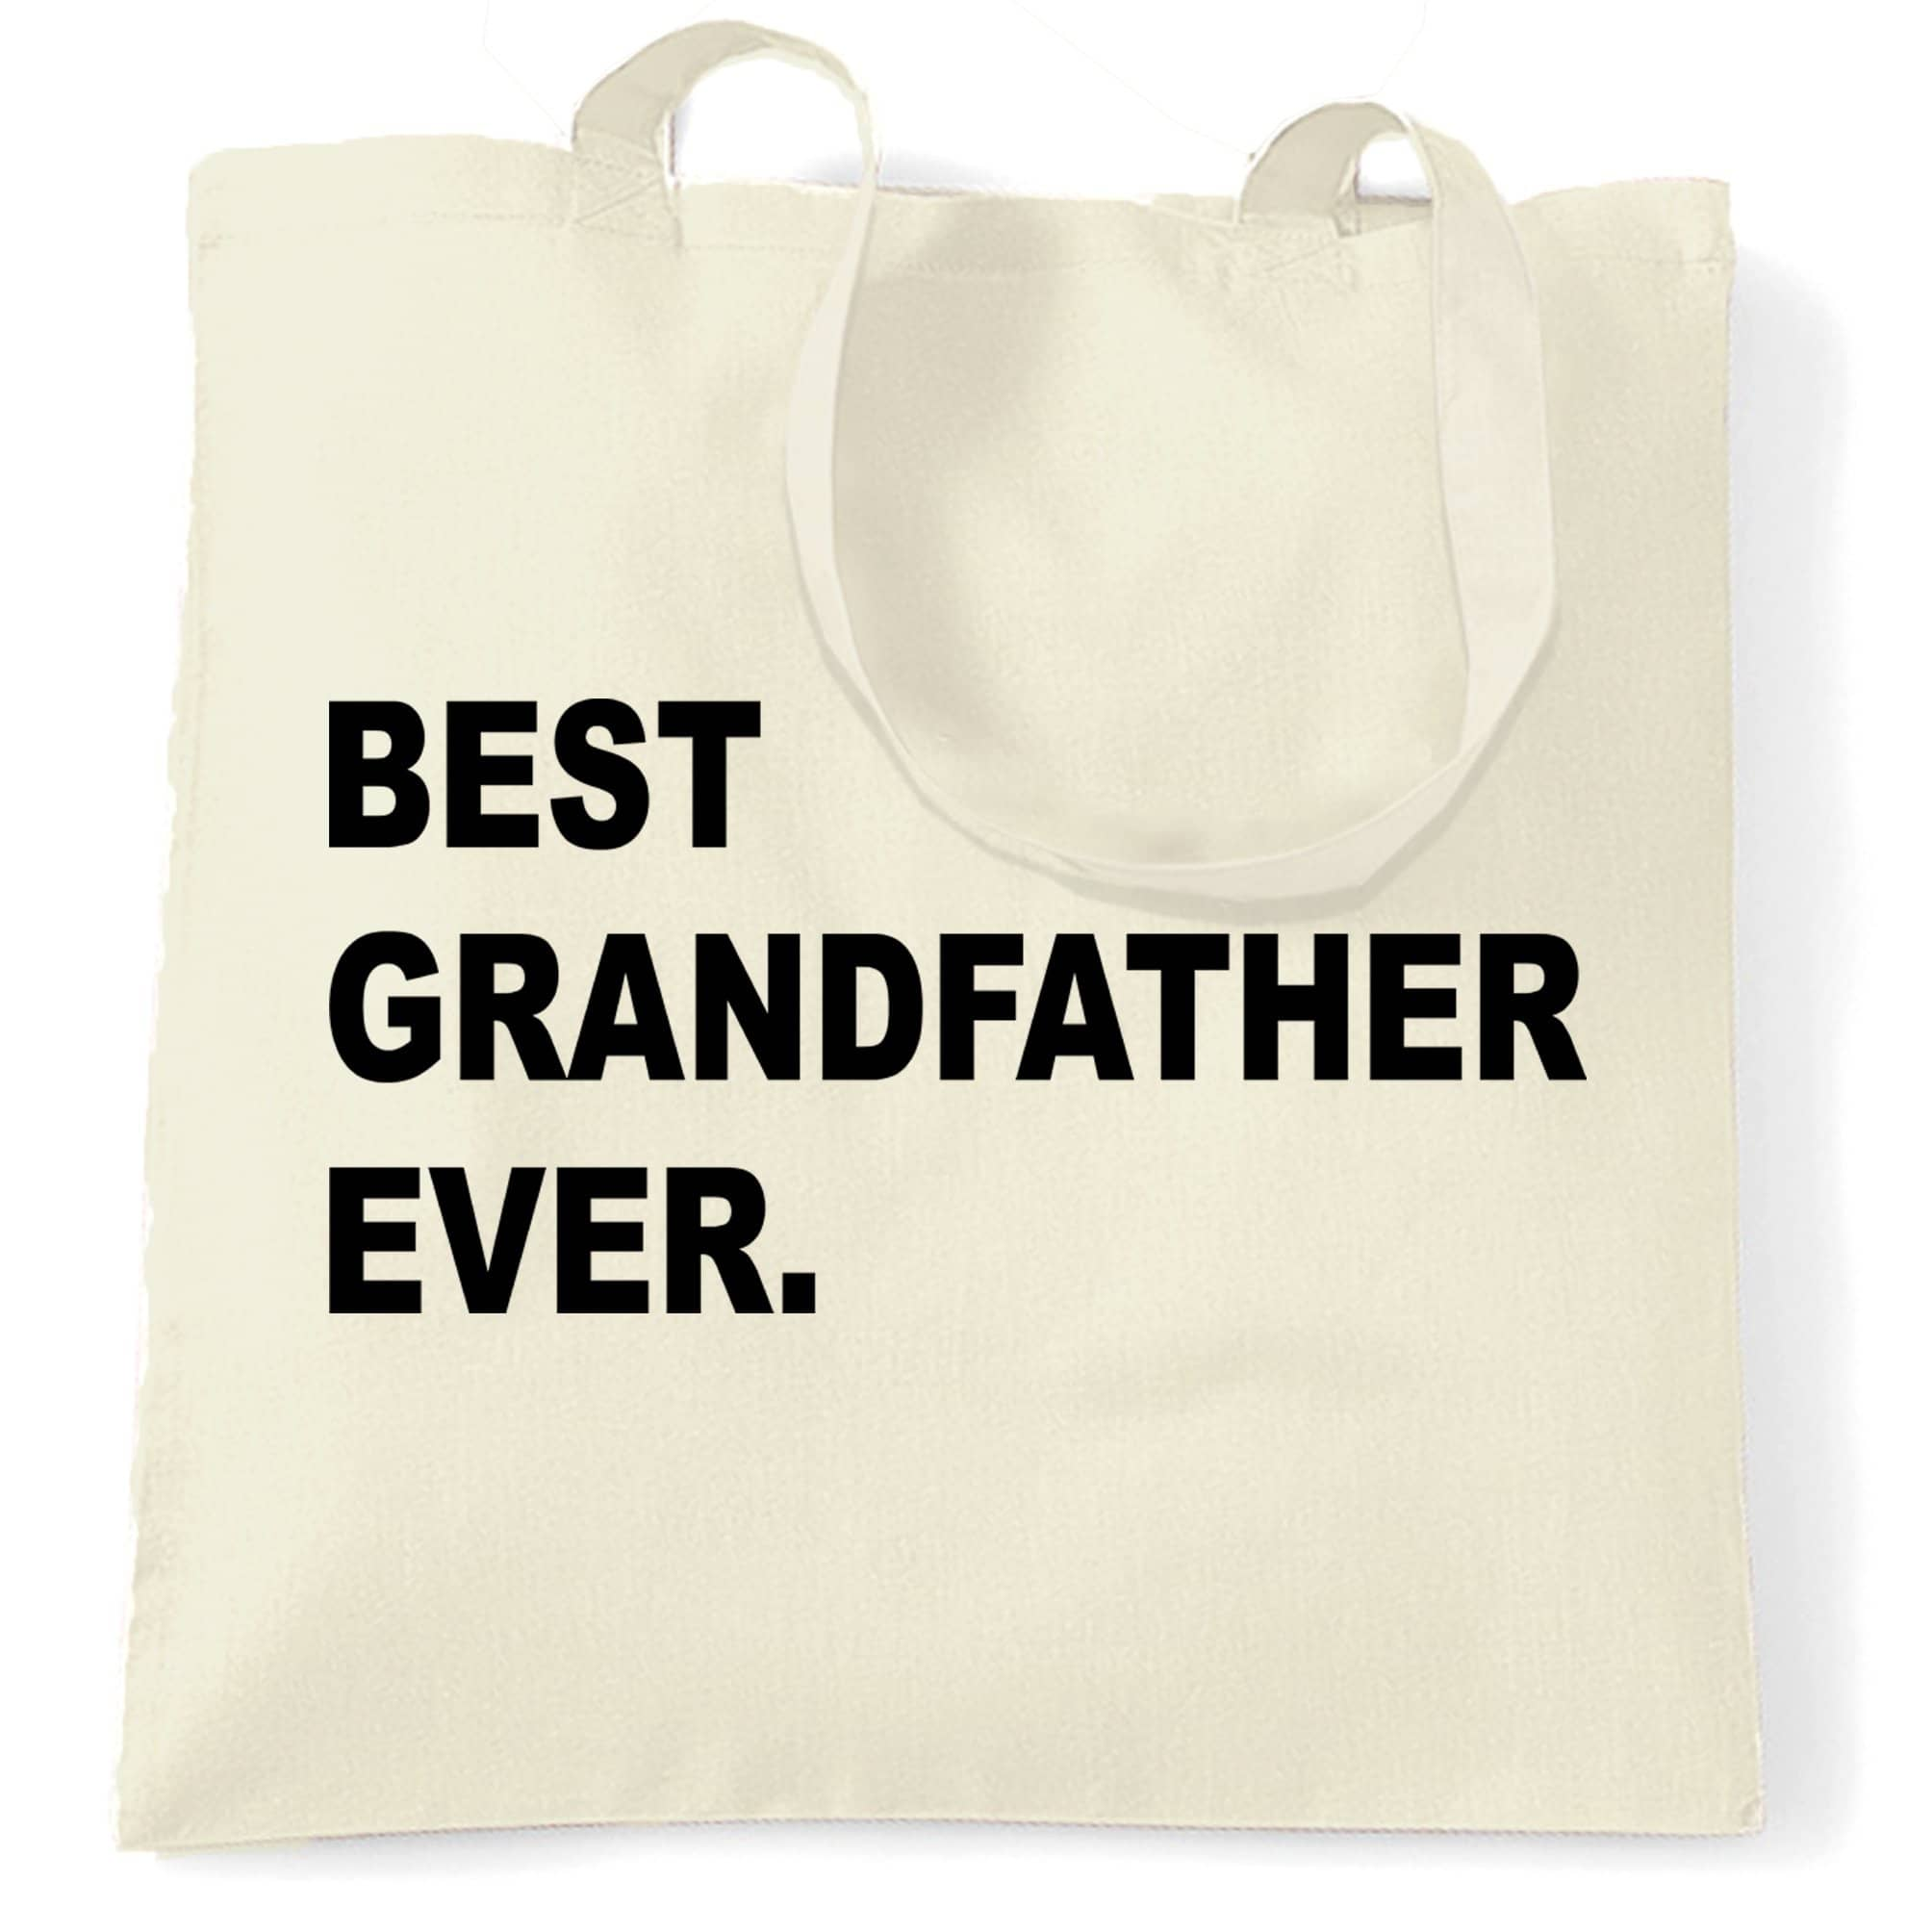 Best Grandfather Ever Tote Bag Parent Family Slogan